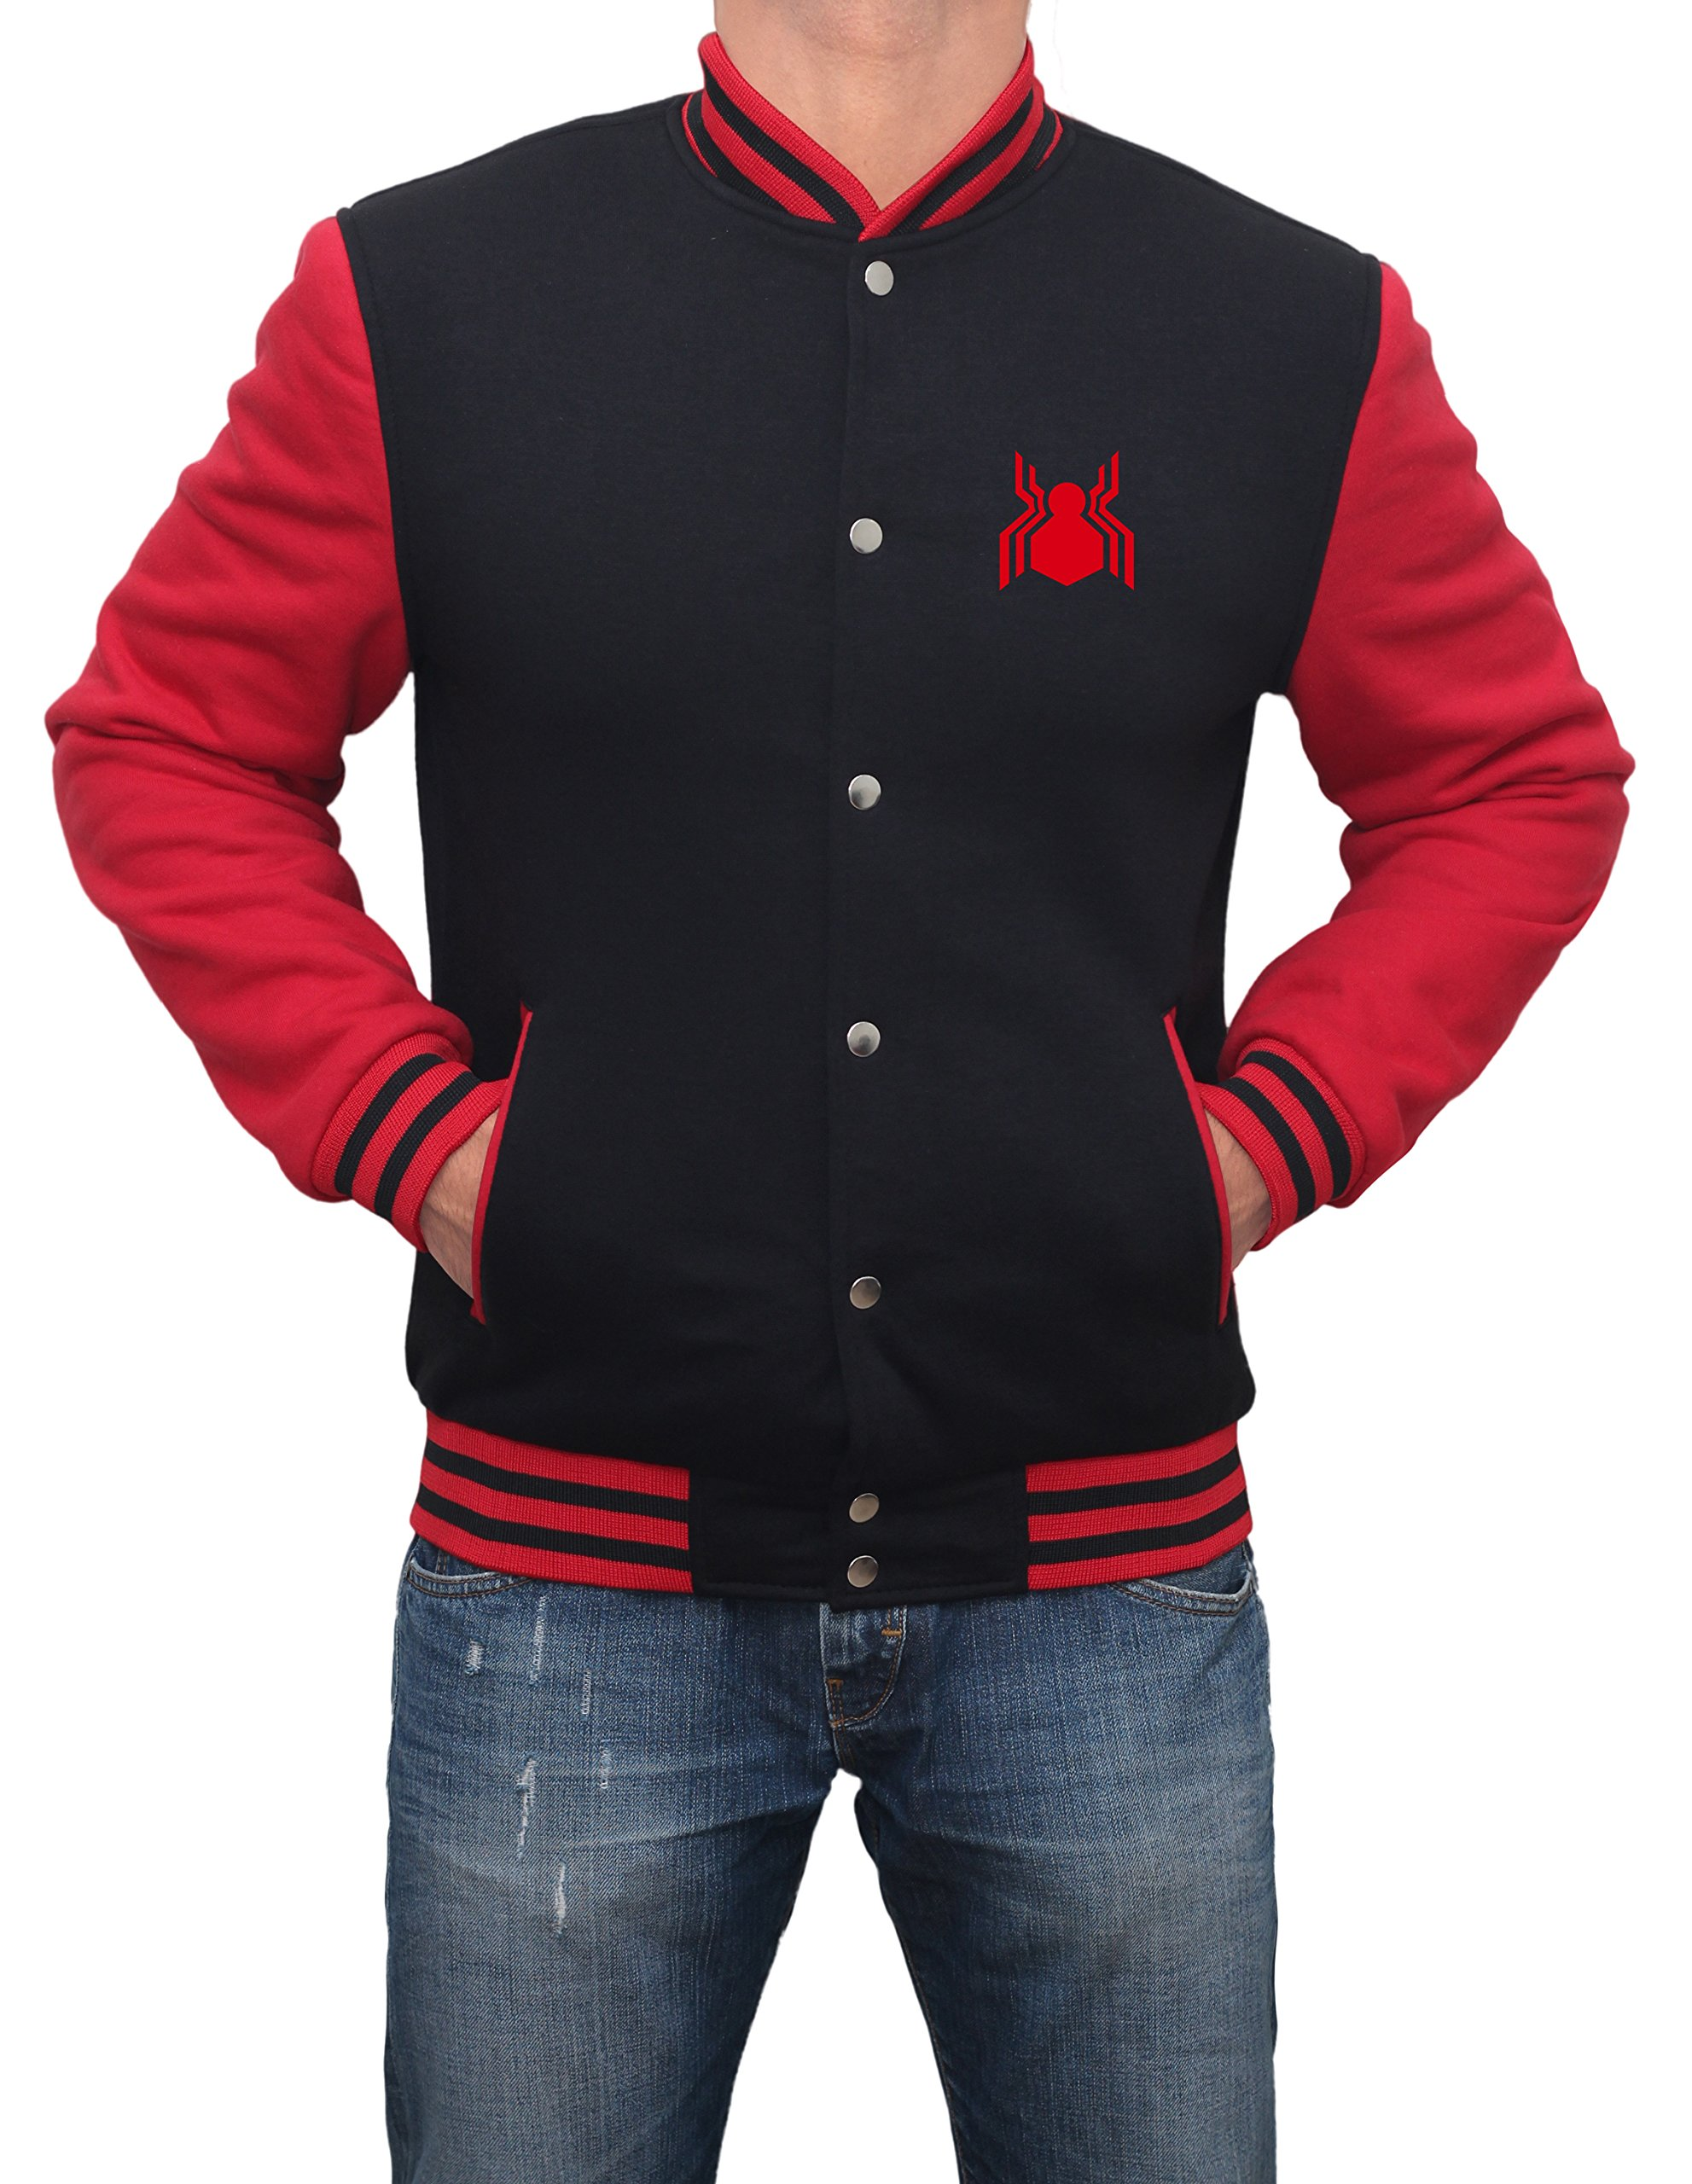 Mens Spider Man Logo Varsity Jacket | M by Decrum